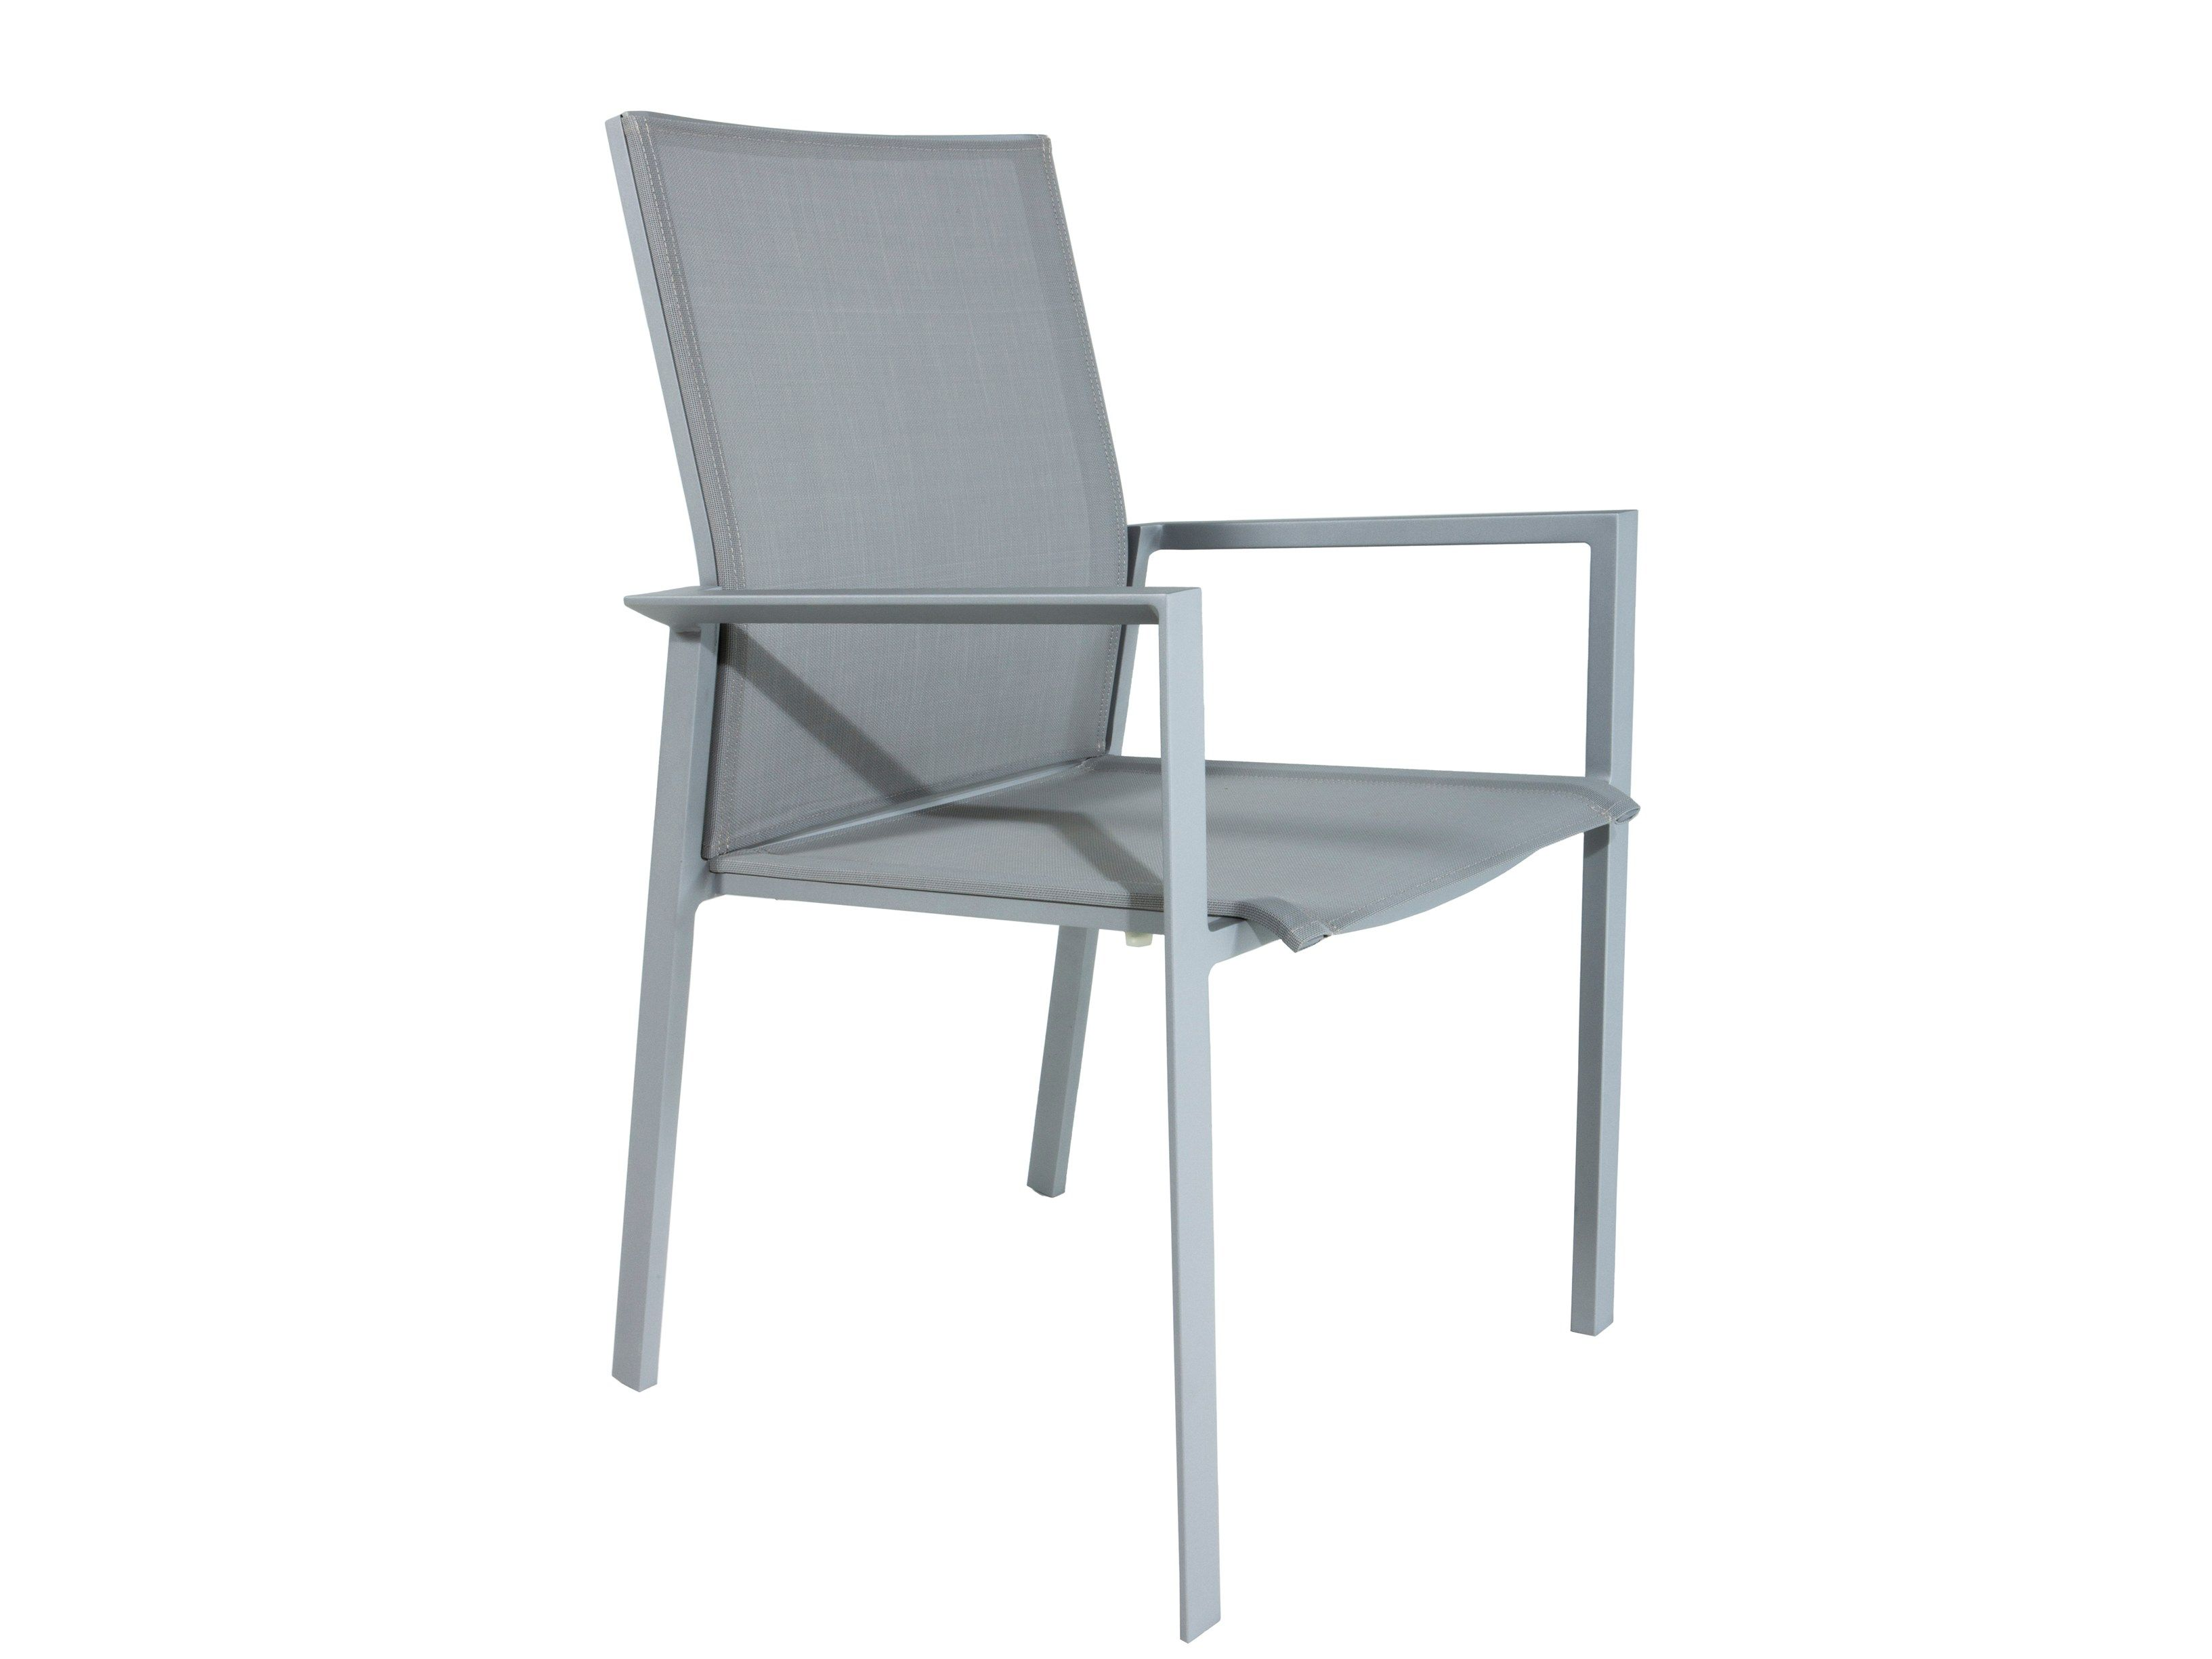 Stackable textilene garden chair with armrests santini 97200 by gescova